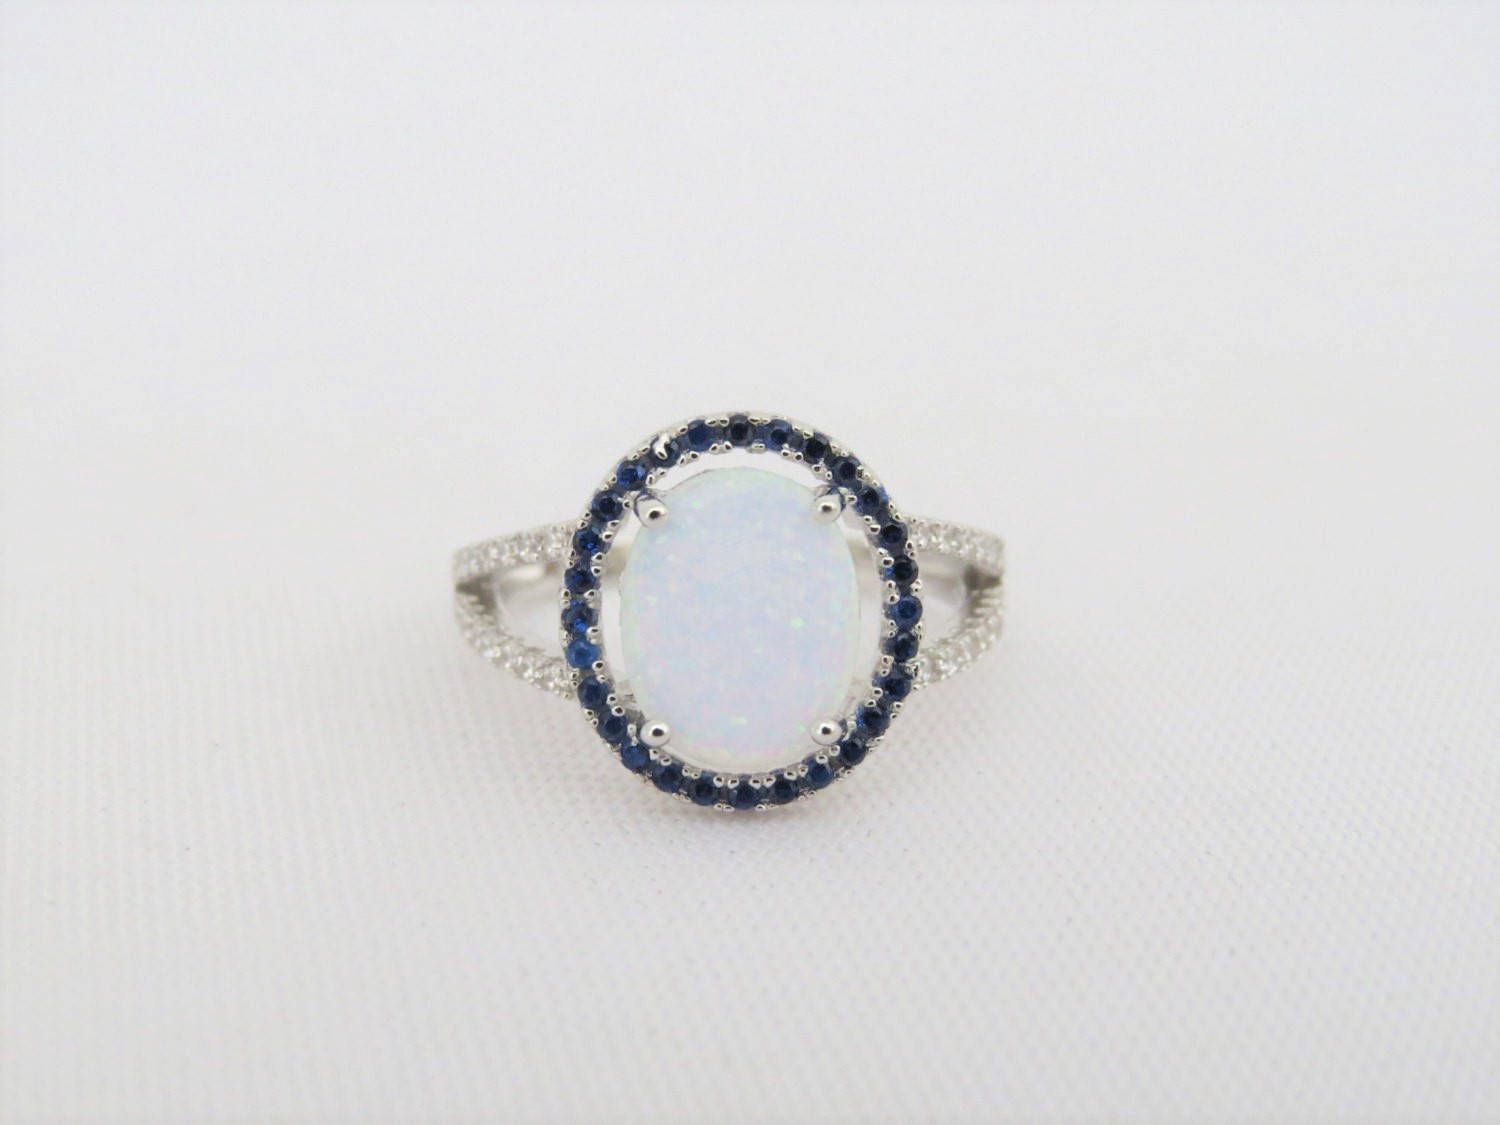 Vintage Sterling Silver White Opal, Blue Sapphire & White Topaz Halo Ring Size 7 by wandajewelry2013 on Etsy